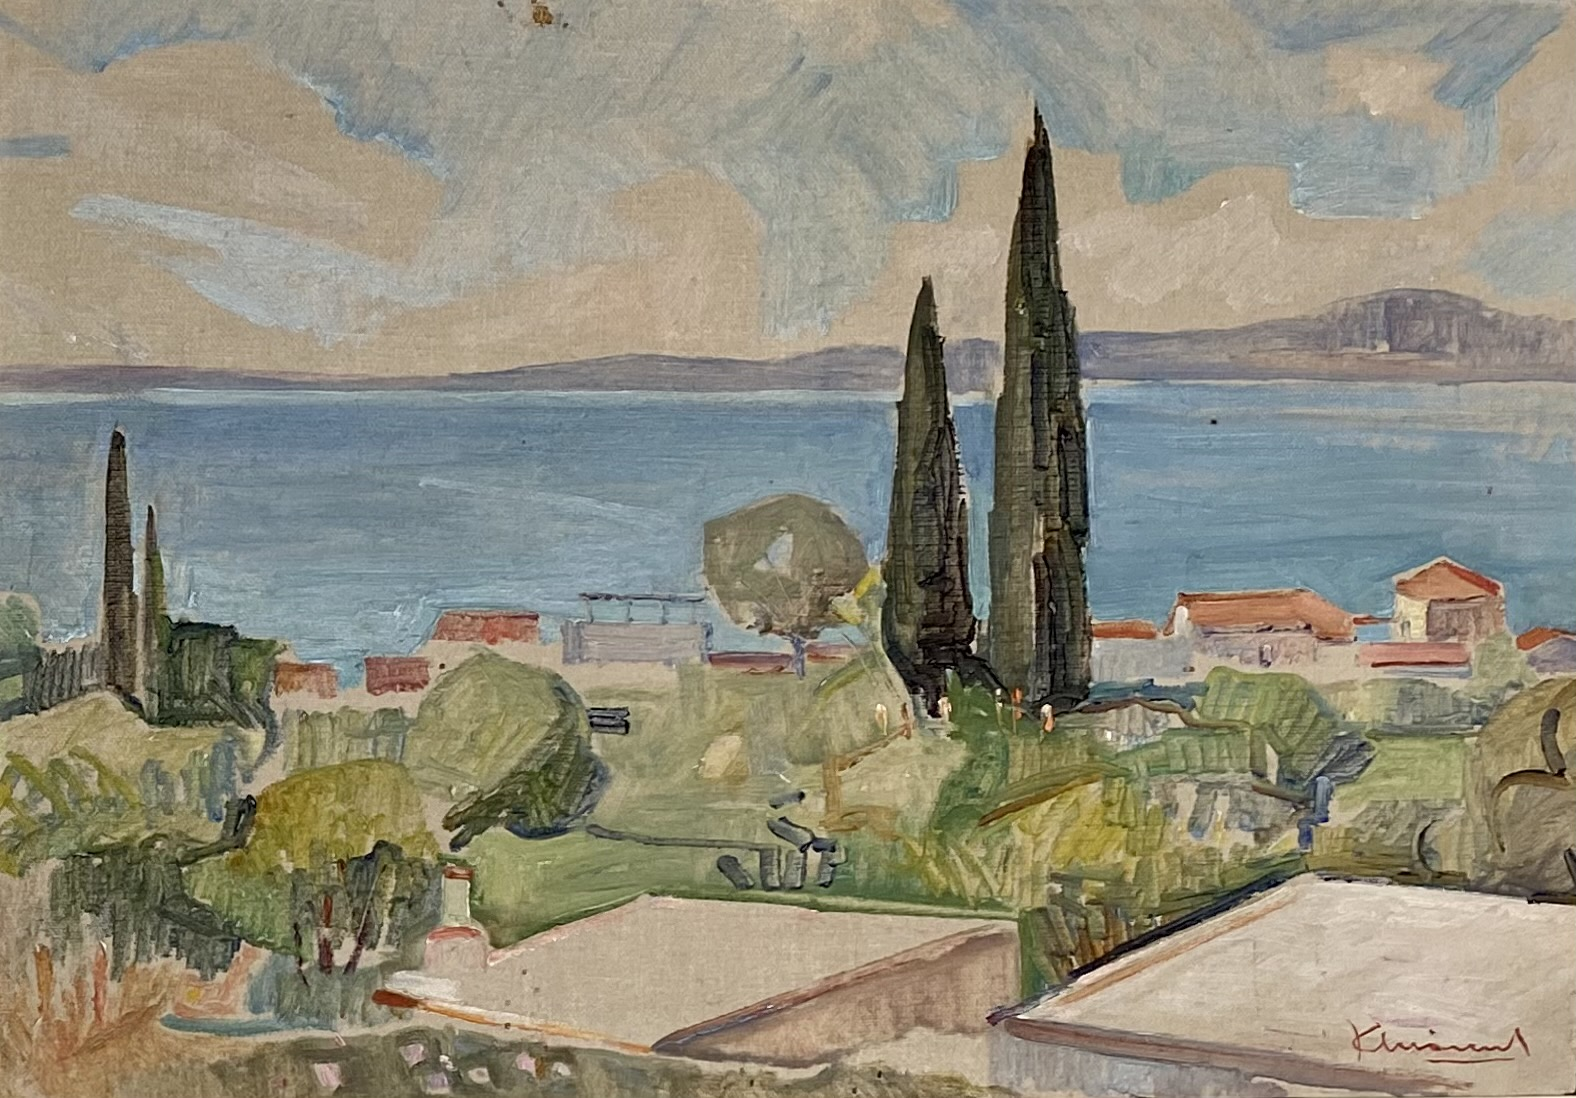 Kostas Linakis (Greek, 1917 - 2000), A Greek village by the sea, oil on wood, 31 x 47 cm.